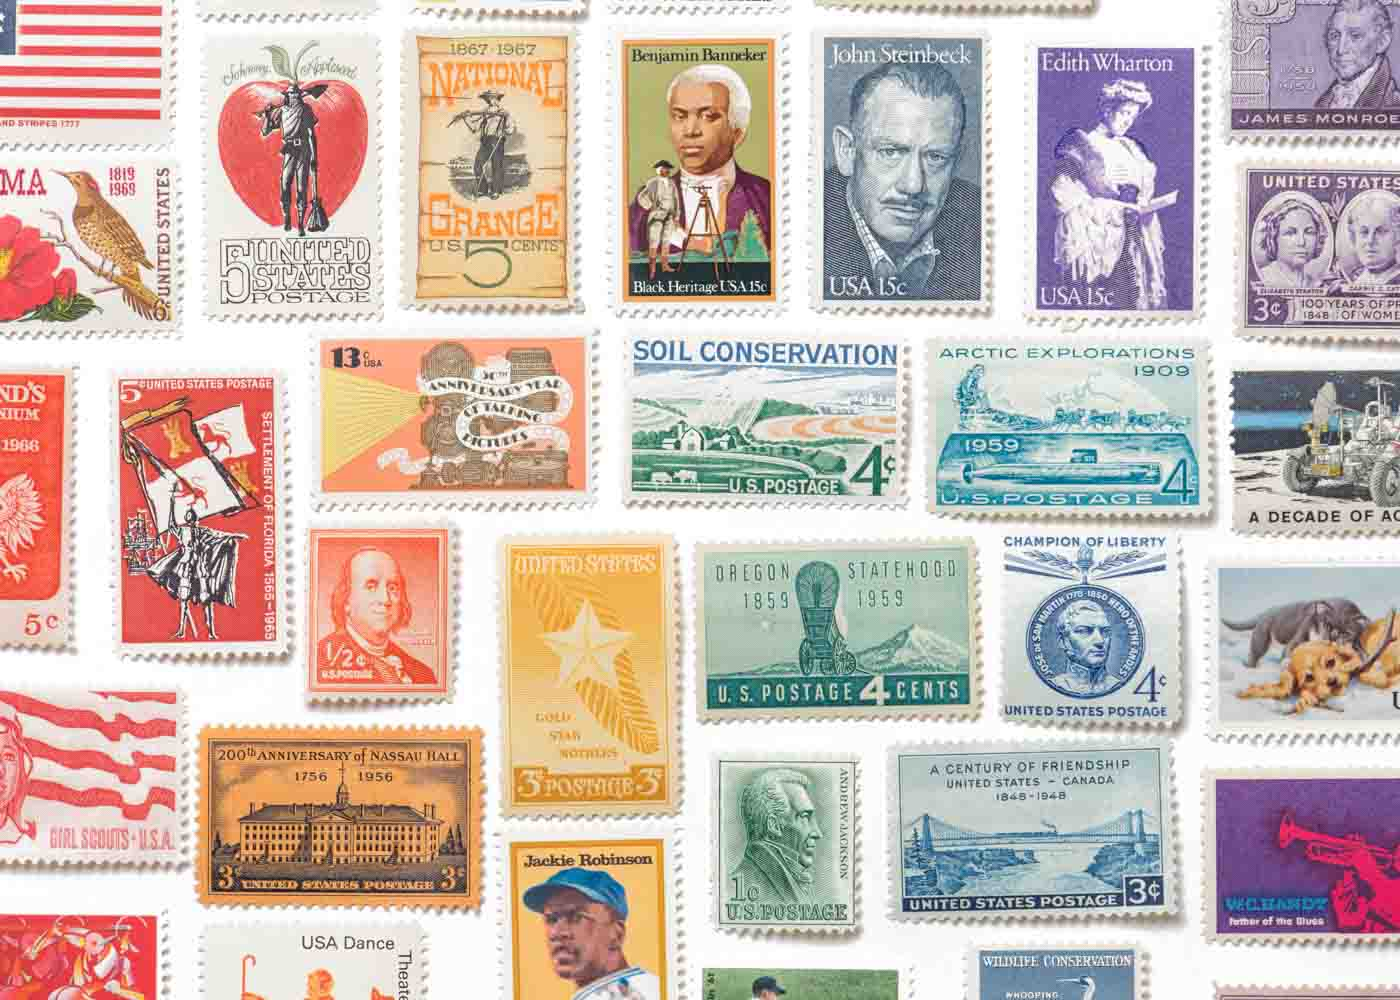 Vintage stamps - themed by color or topic - are a grand gift for the epistolarily inclined.